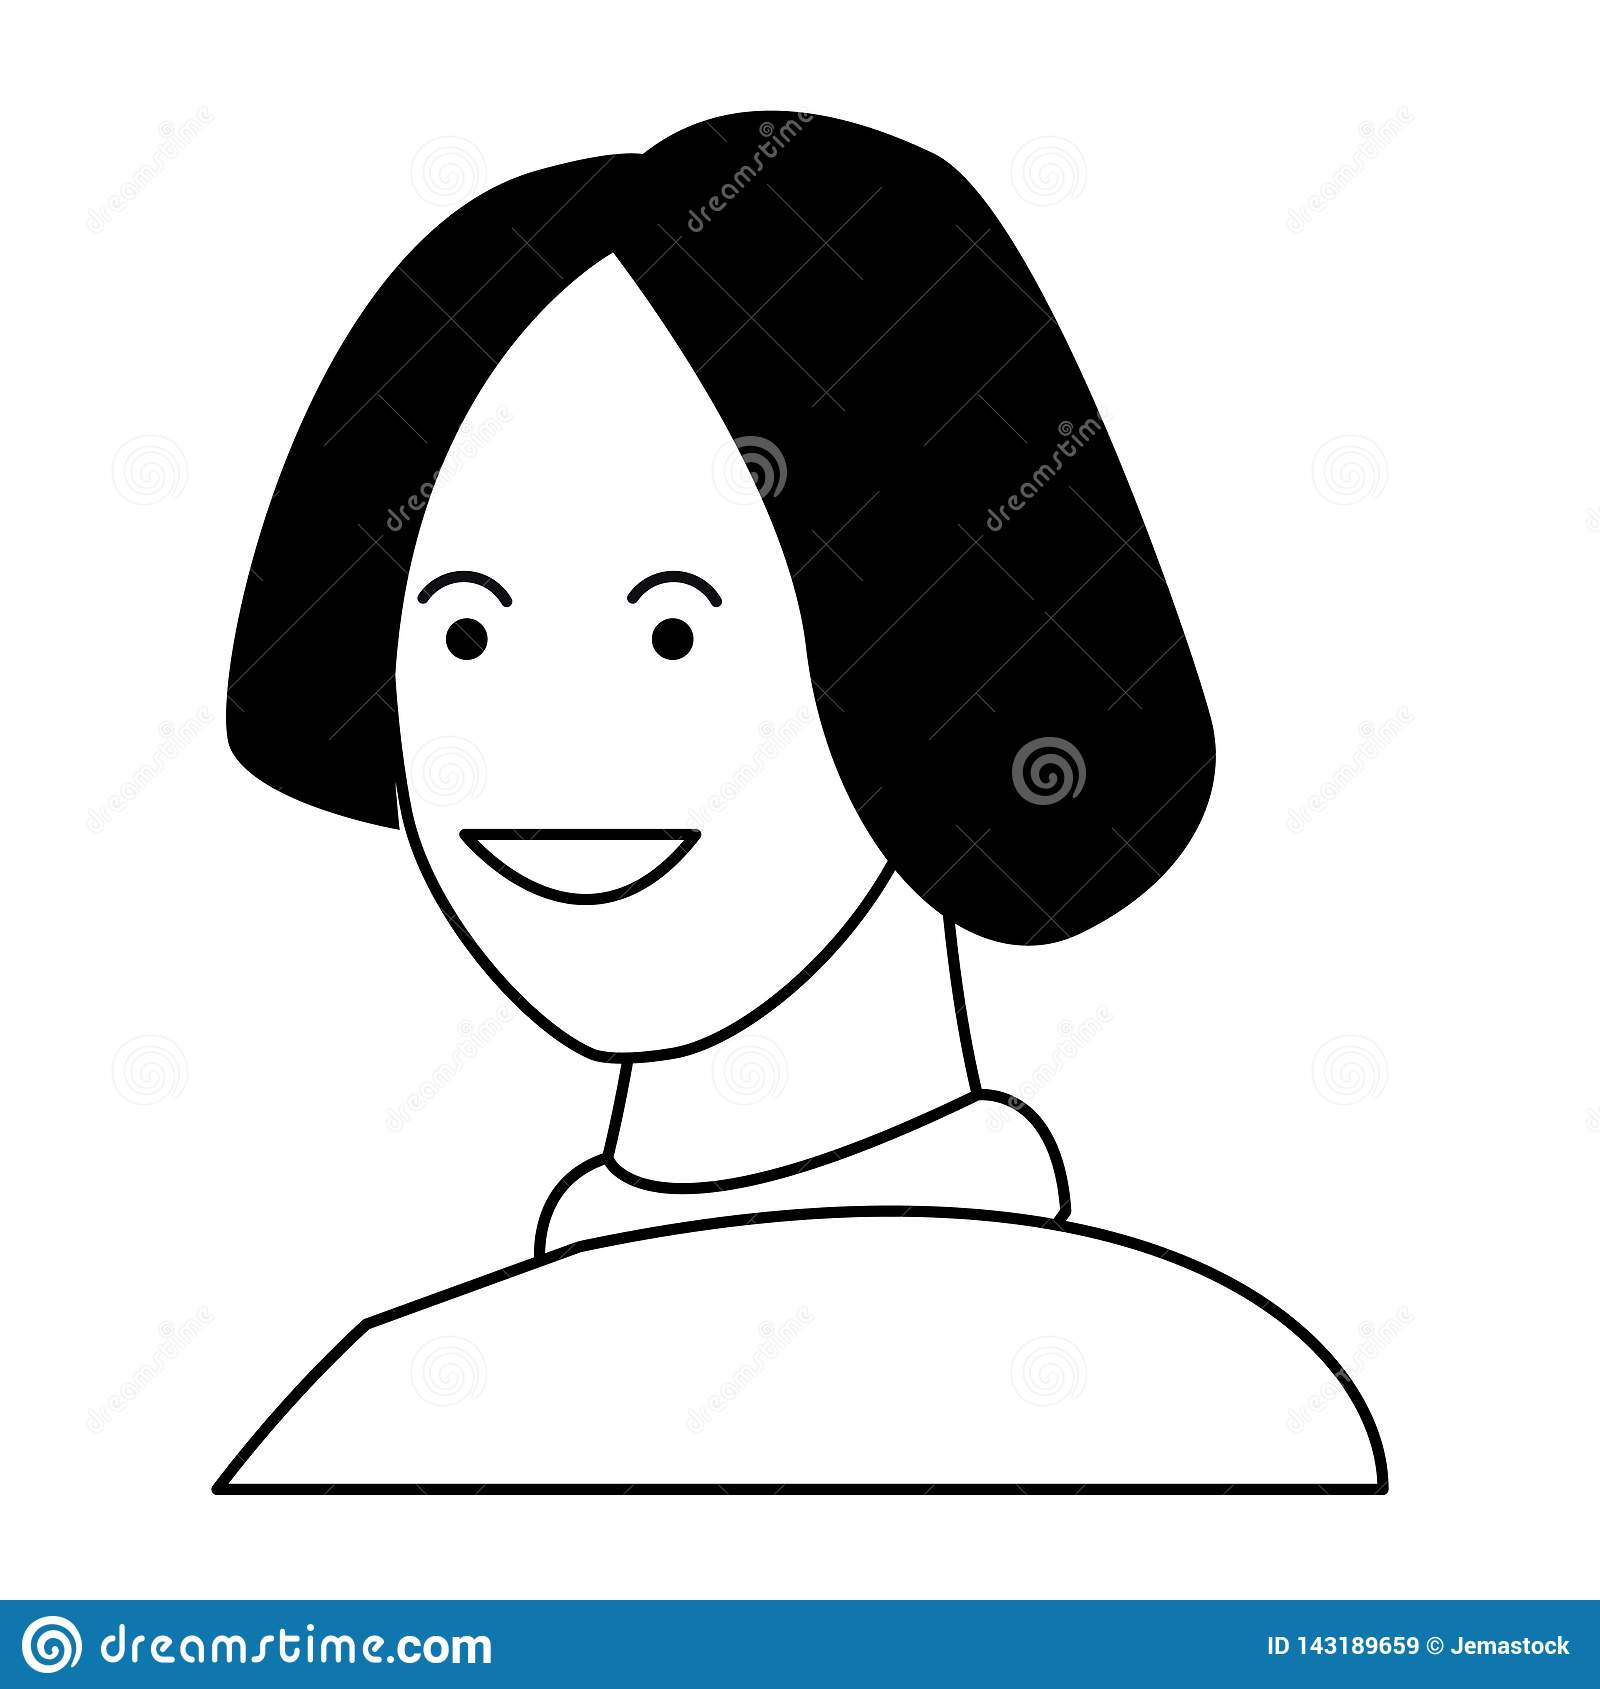 Woman Smiling Cartoon Profile In Black And White Stock Vector Illustration Of Casual Character 143189659